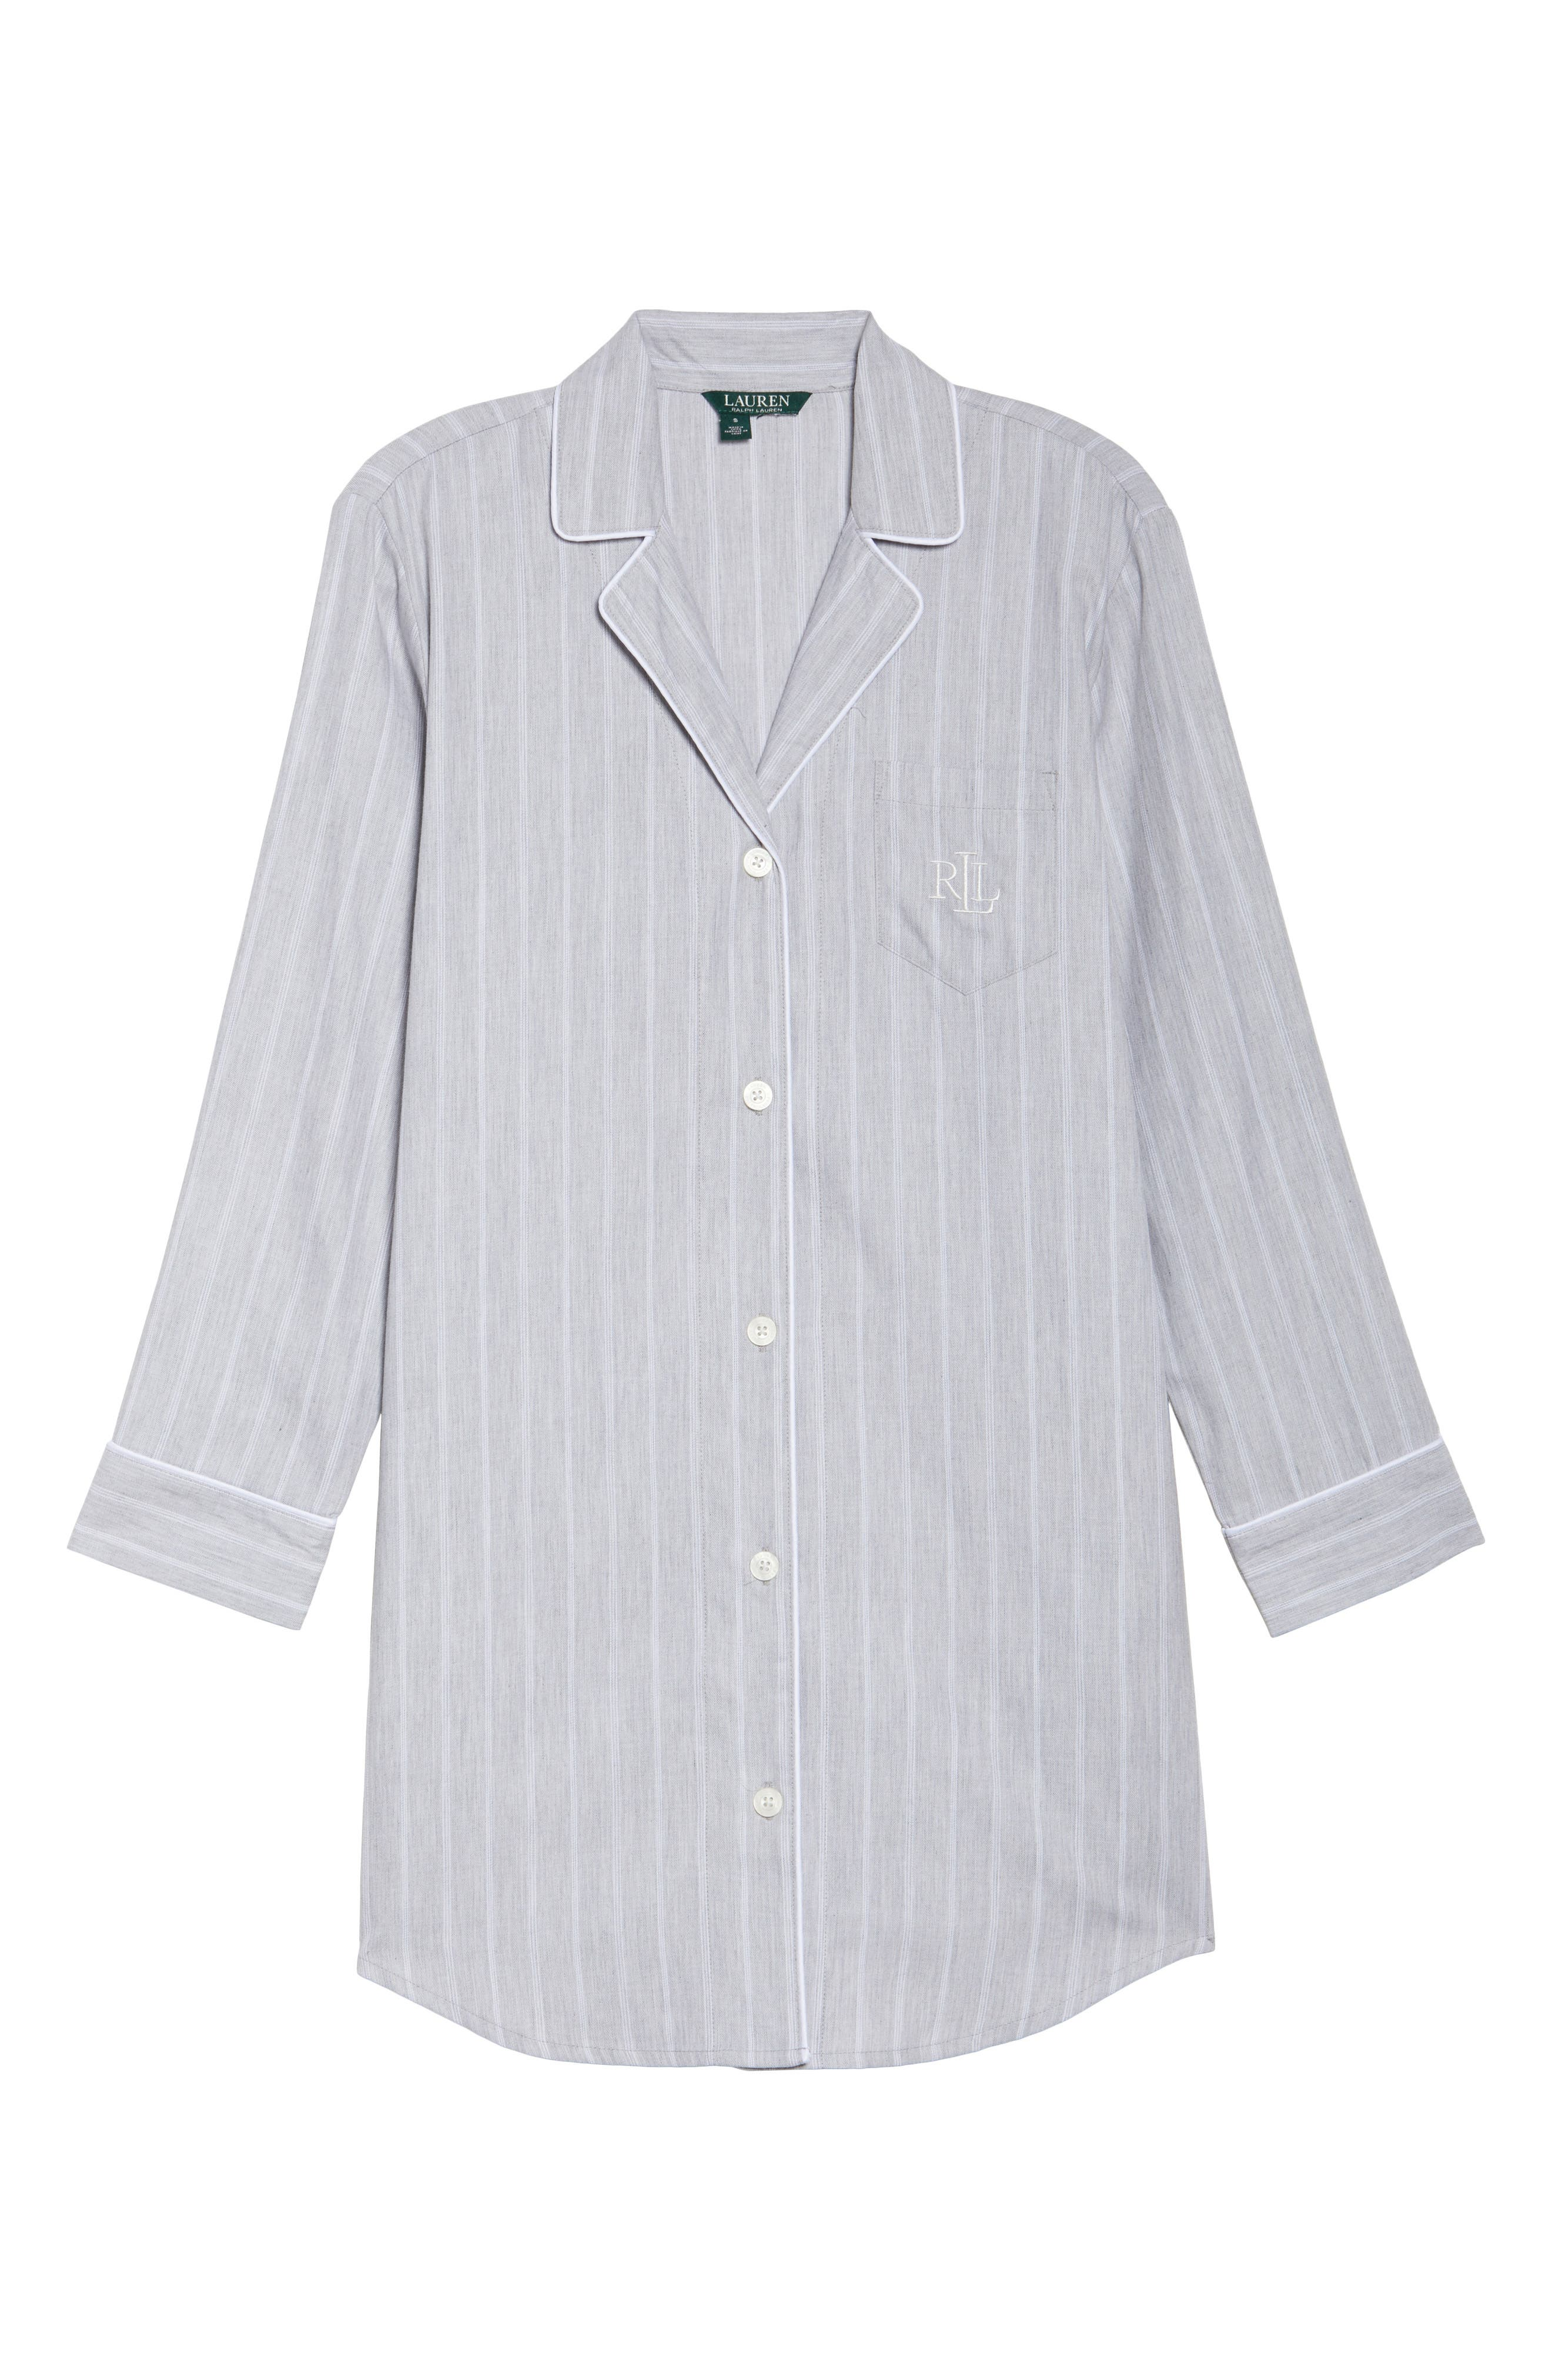 Notch Collar Sleep Shirt,                             Alternate thumbnail 6, color,                             060